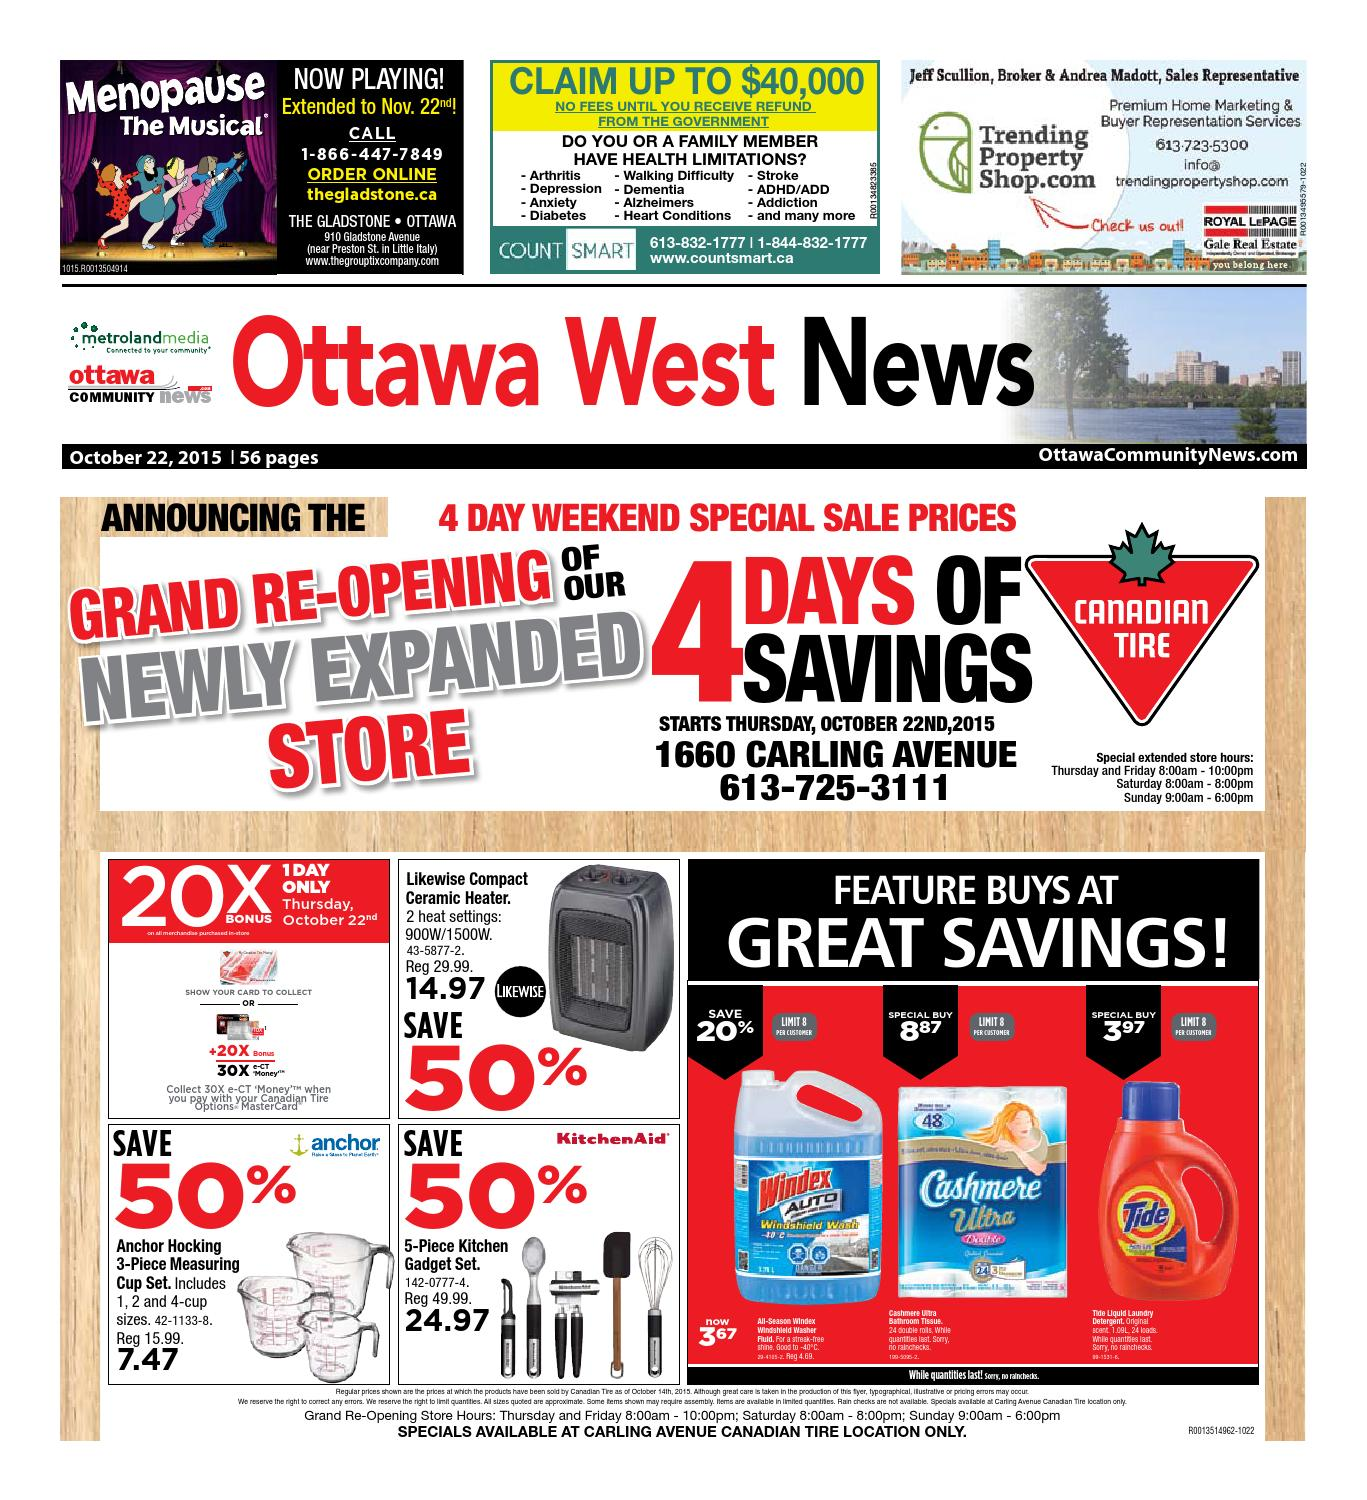 Ottawawest102215 By Metroland East Ottawa West News Issuu Franke Independence Day  Buy 2 Appliances Free Cooker Hood